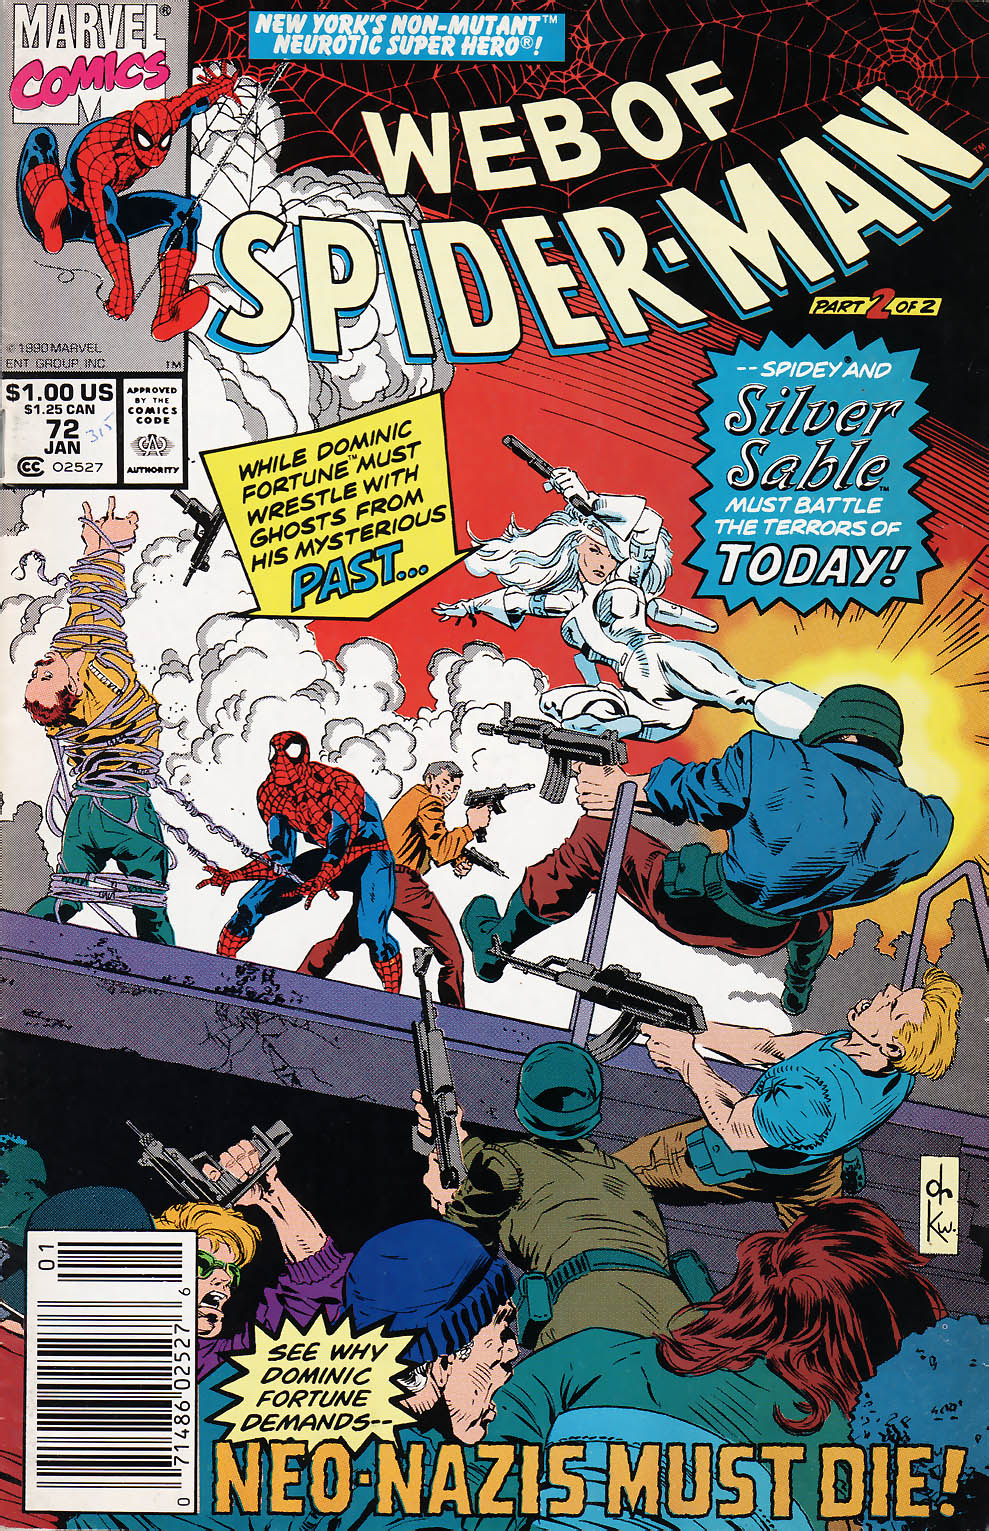 Web of Spider-Man (1985) 72 Page 1